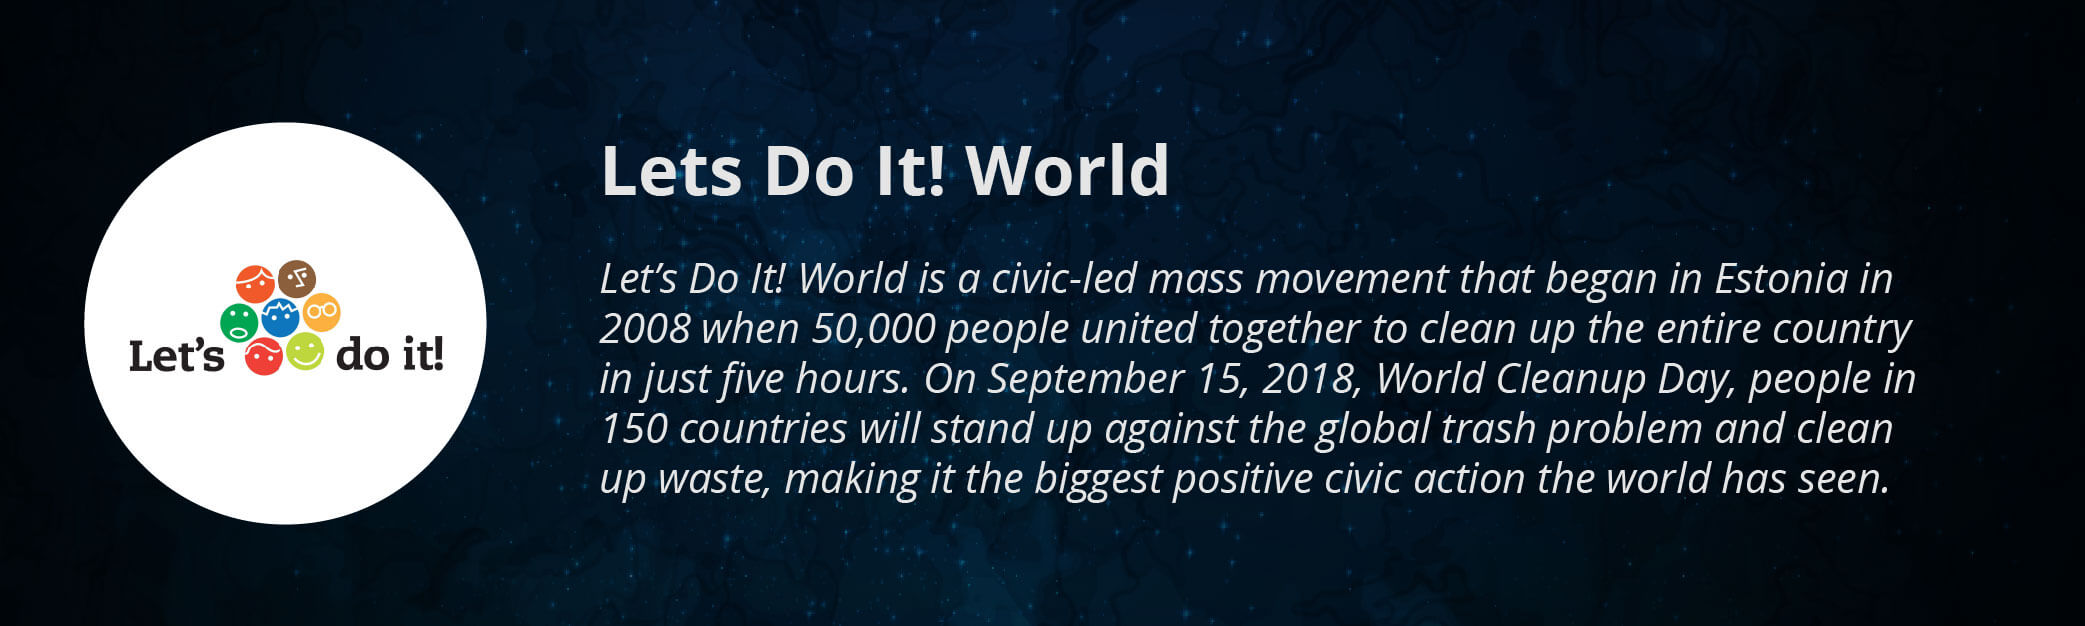 Lets Do It! World